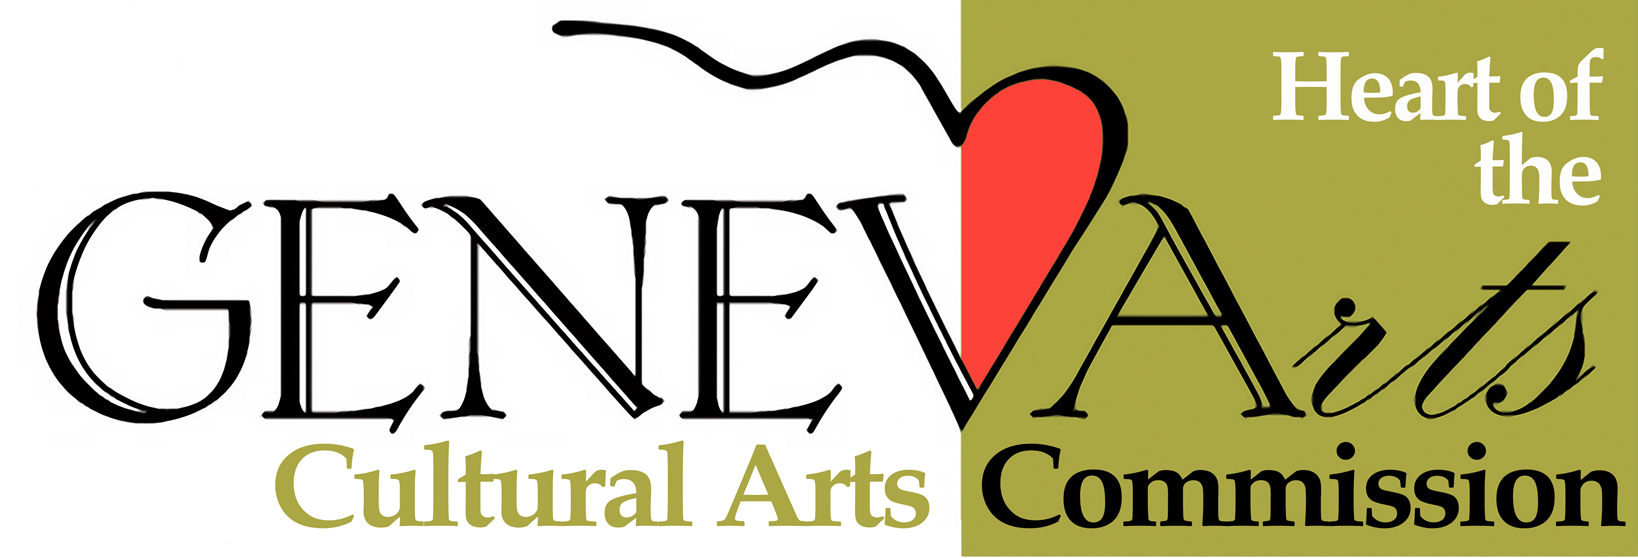 Cultural Arts Commission Logo